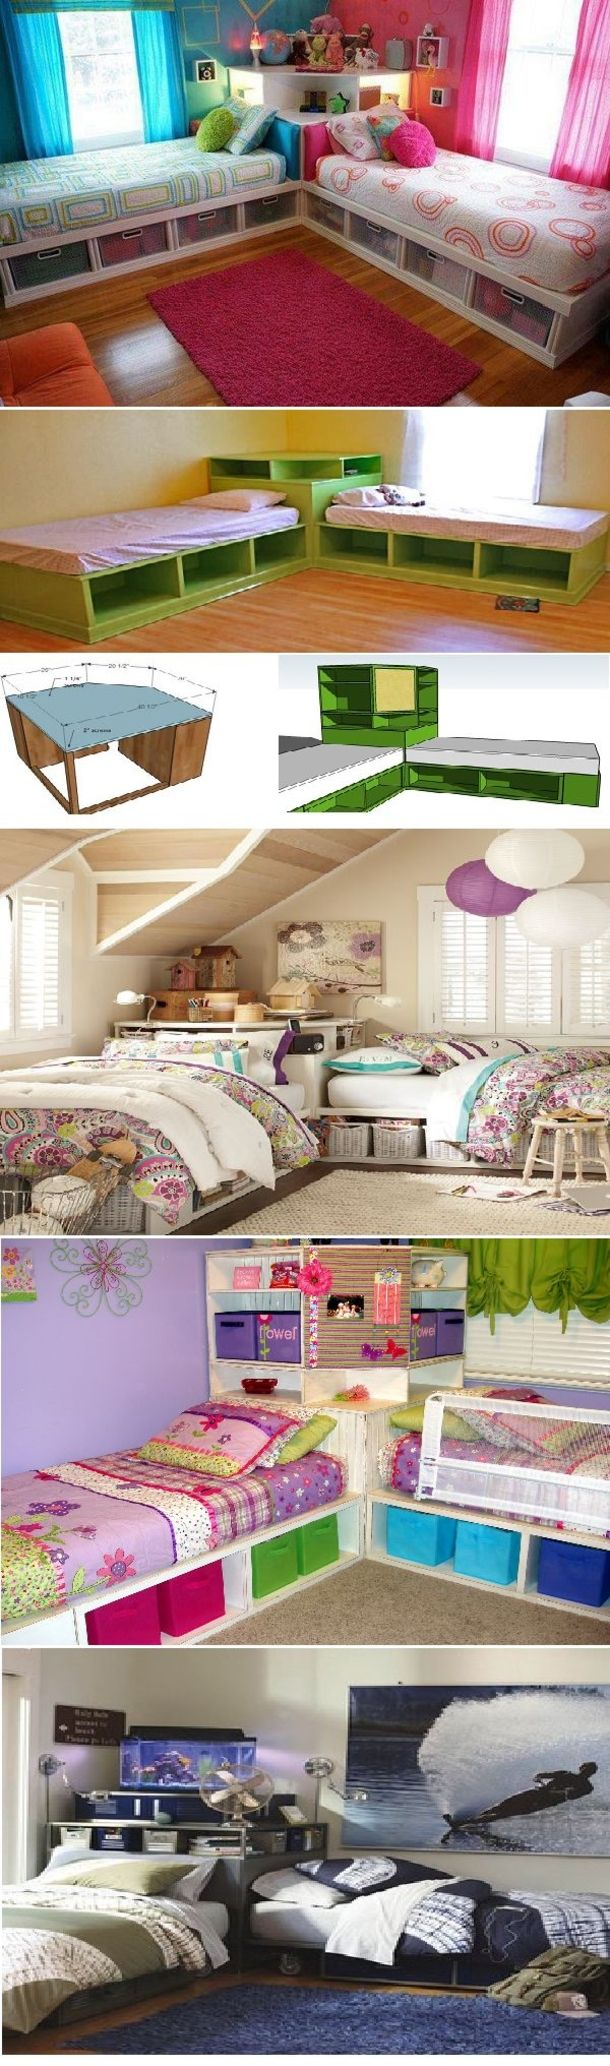 Best Shared Bedroom Ideas For Boys And Girls home kids children interior design home decor home ideas homes bedrooms children's rooms childrens rooms shared rooms